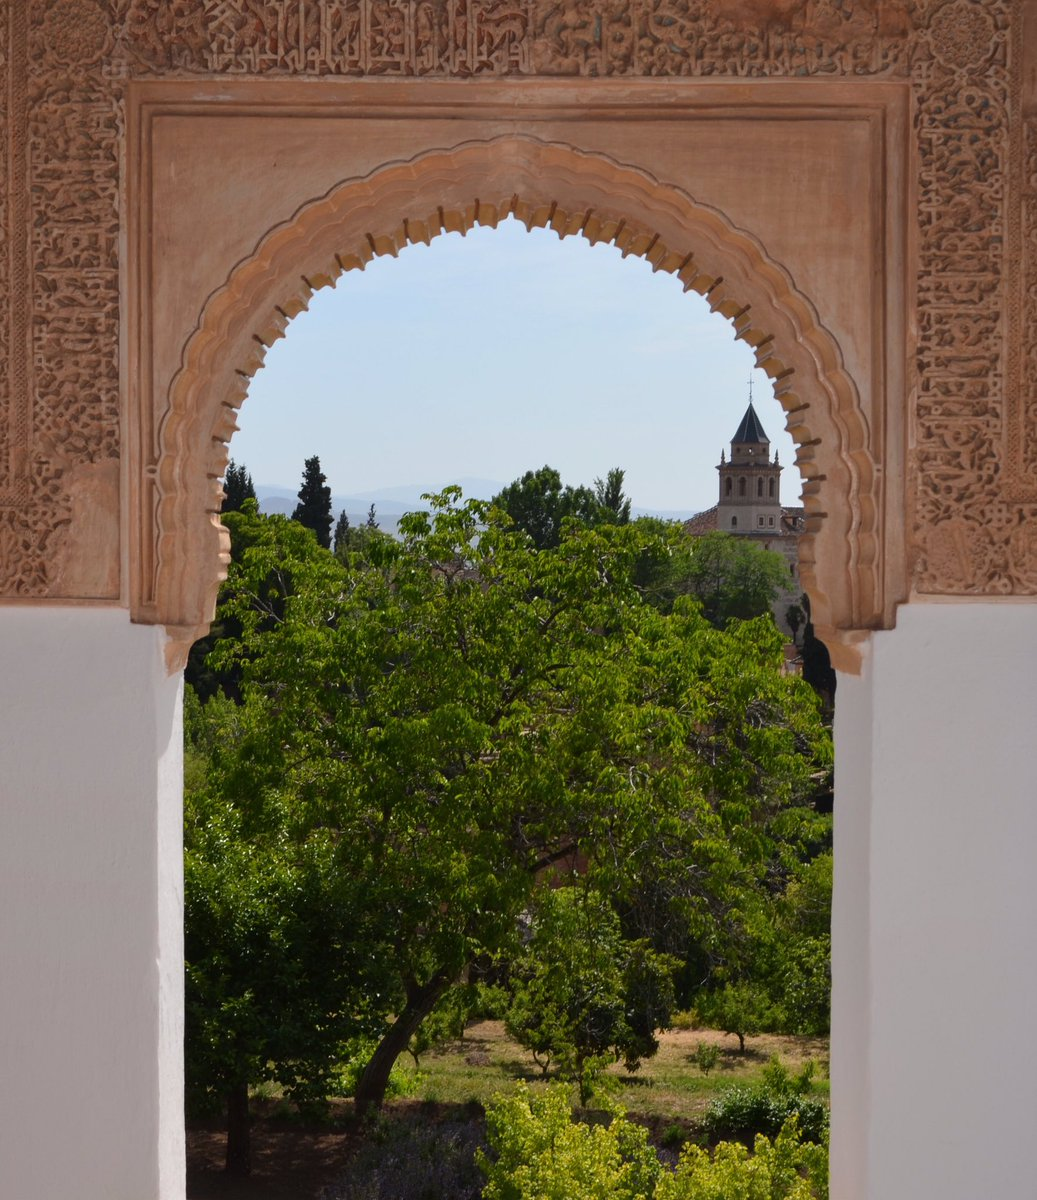 It's nice having a day in medieval Granada every now and then #spain #granada #alhambra #moorisharchitecture #garden #españa #visitspain #travel #remarkabletravelspic.twitter.com/wlbl1KAECh